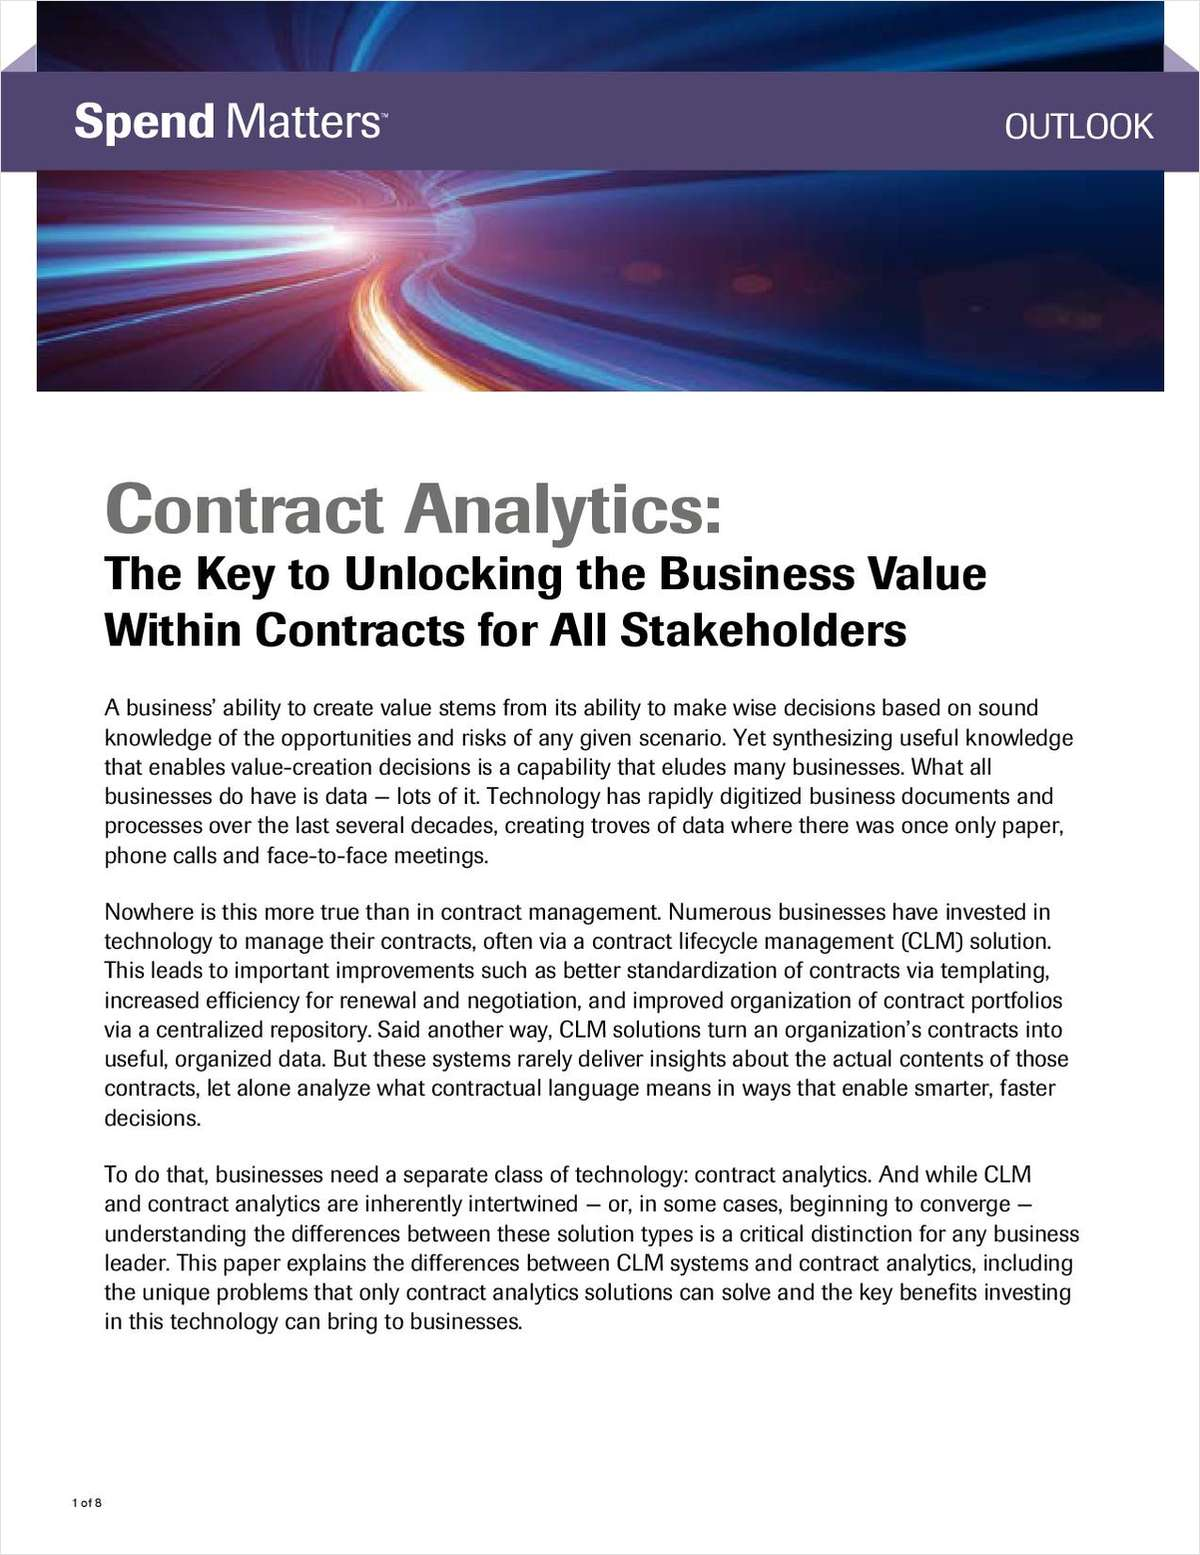 Contract Analytics - The Key to Unlocking Business Value within Contracts for All Stakeholders